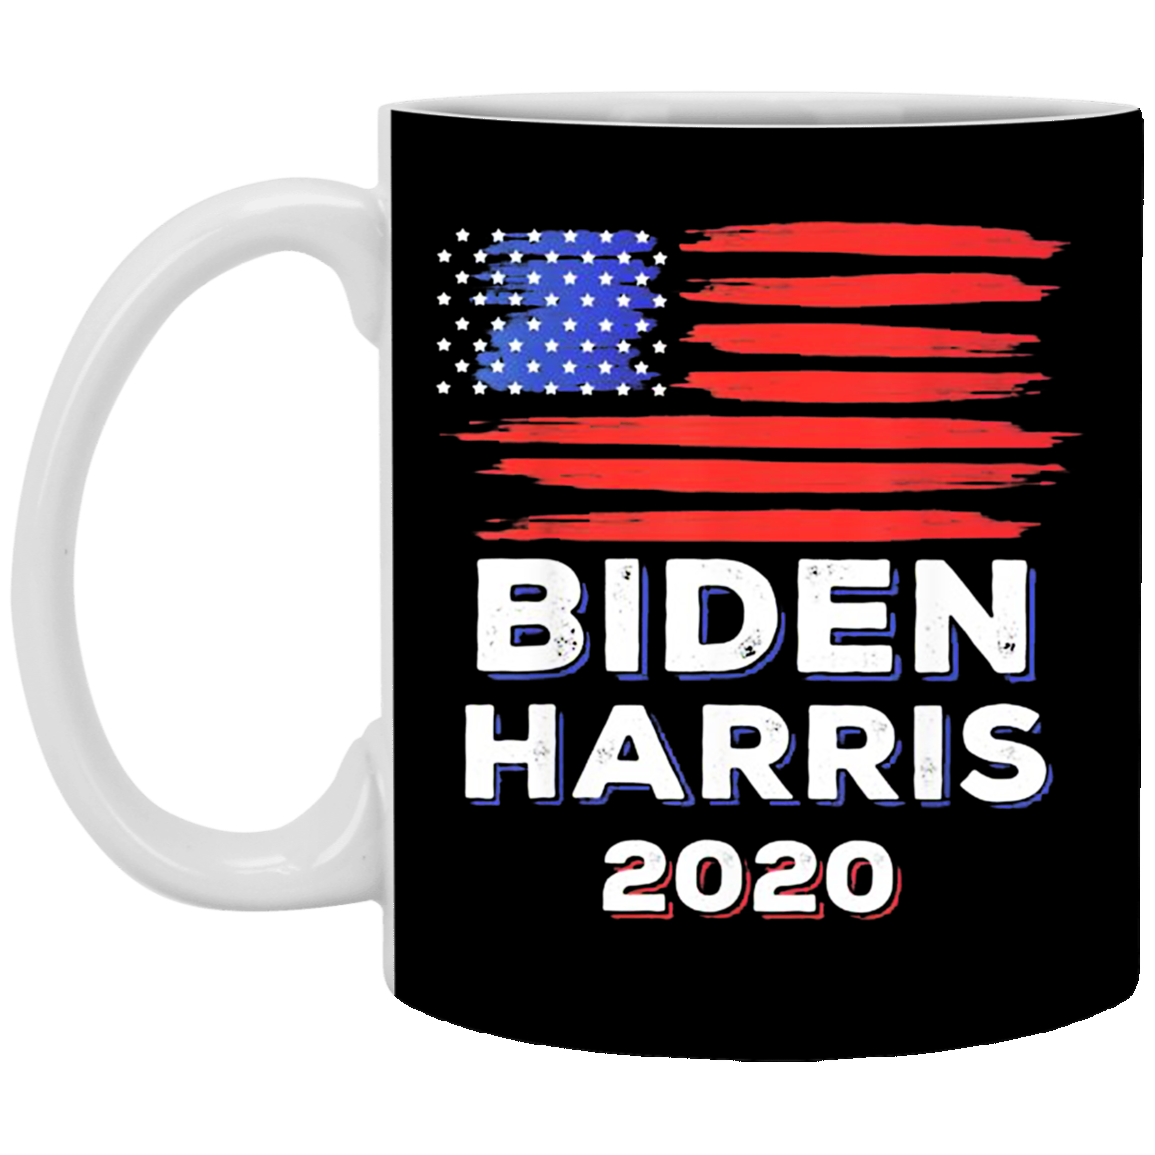 Biden Harris 2020 Mug American Flag With Vintage Style For Biden Voters Biden Harris